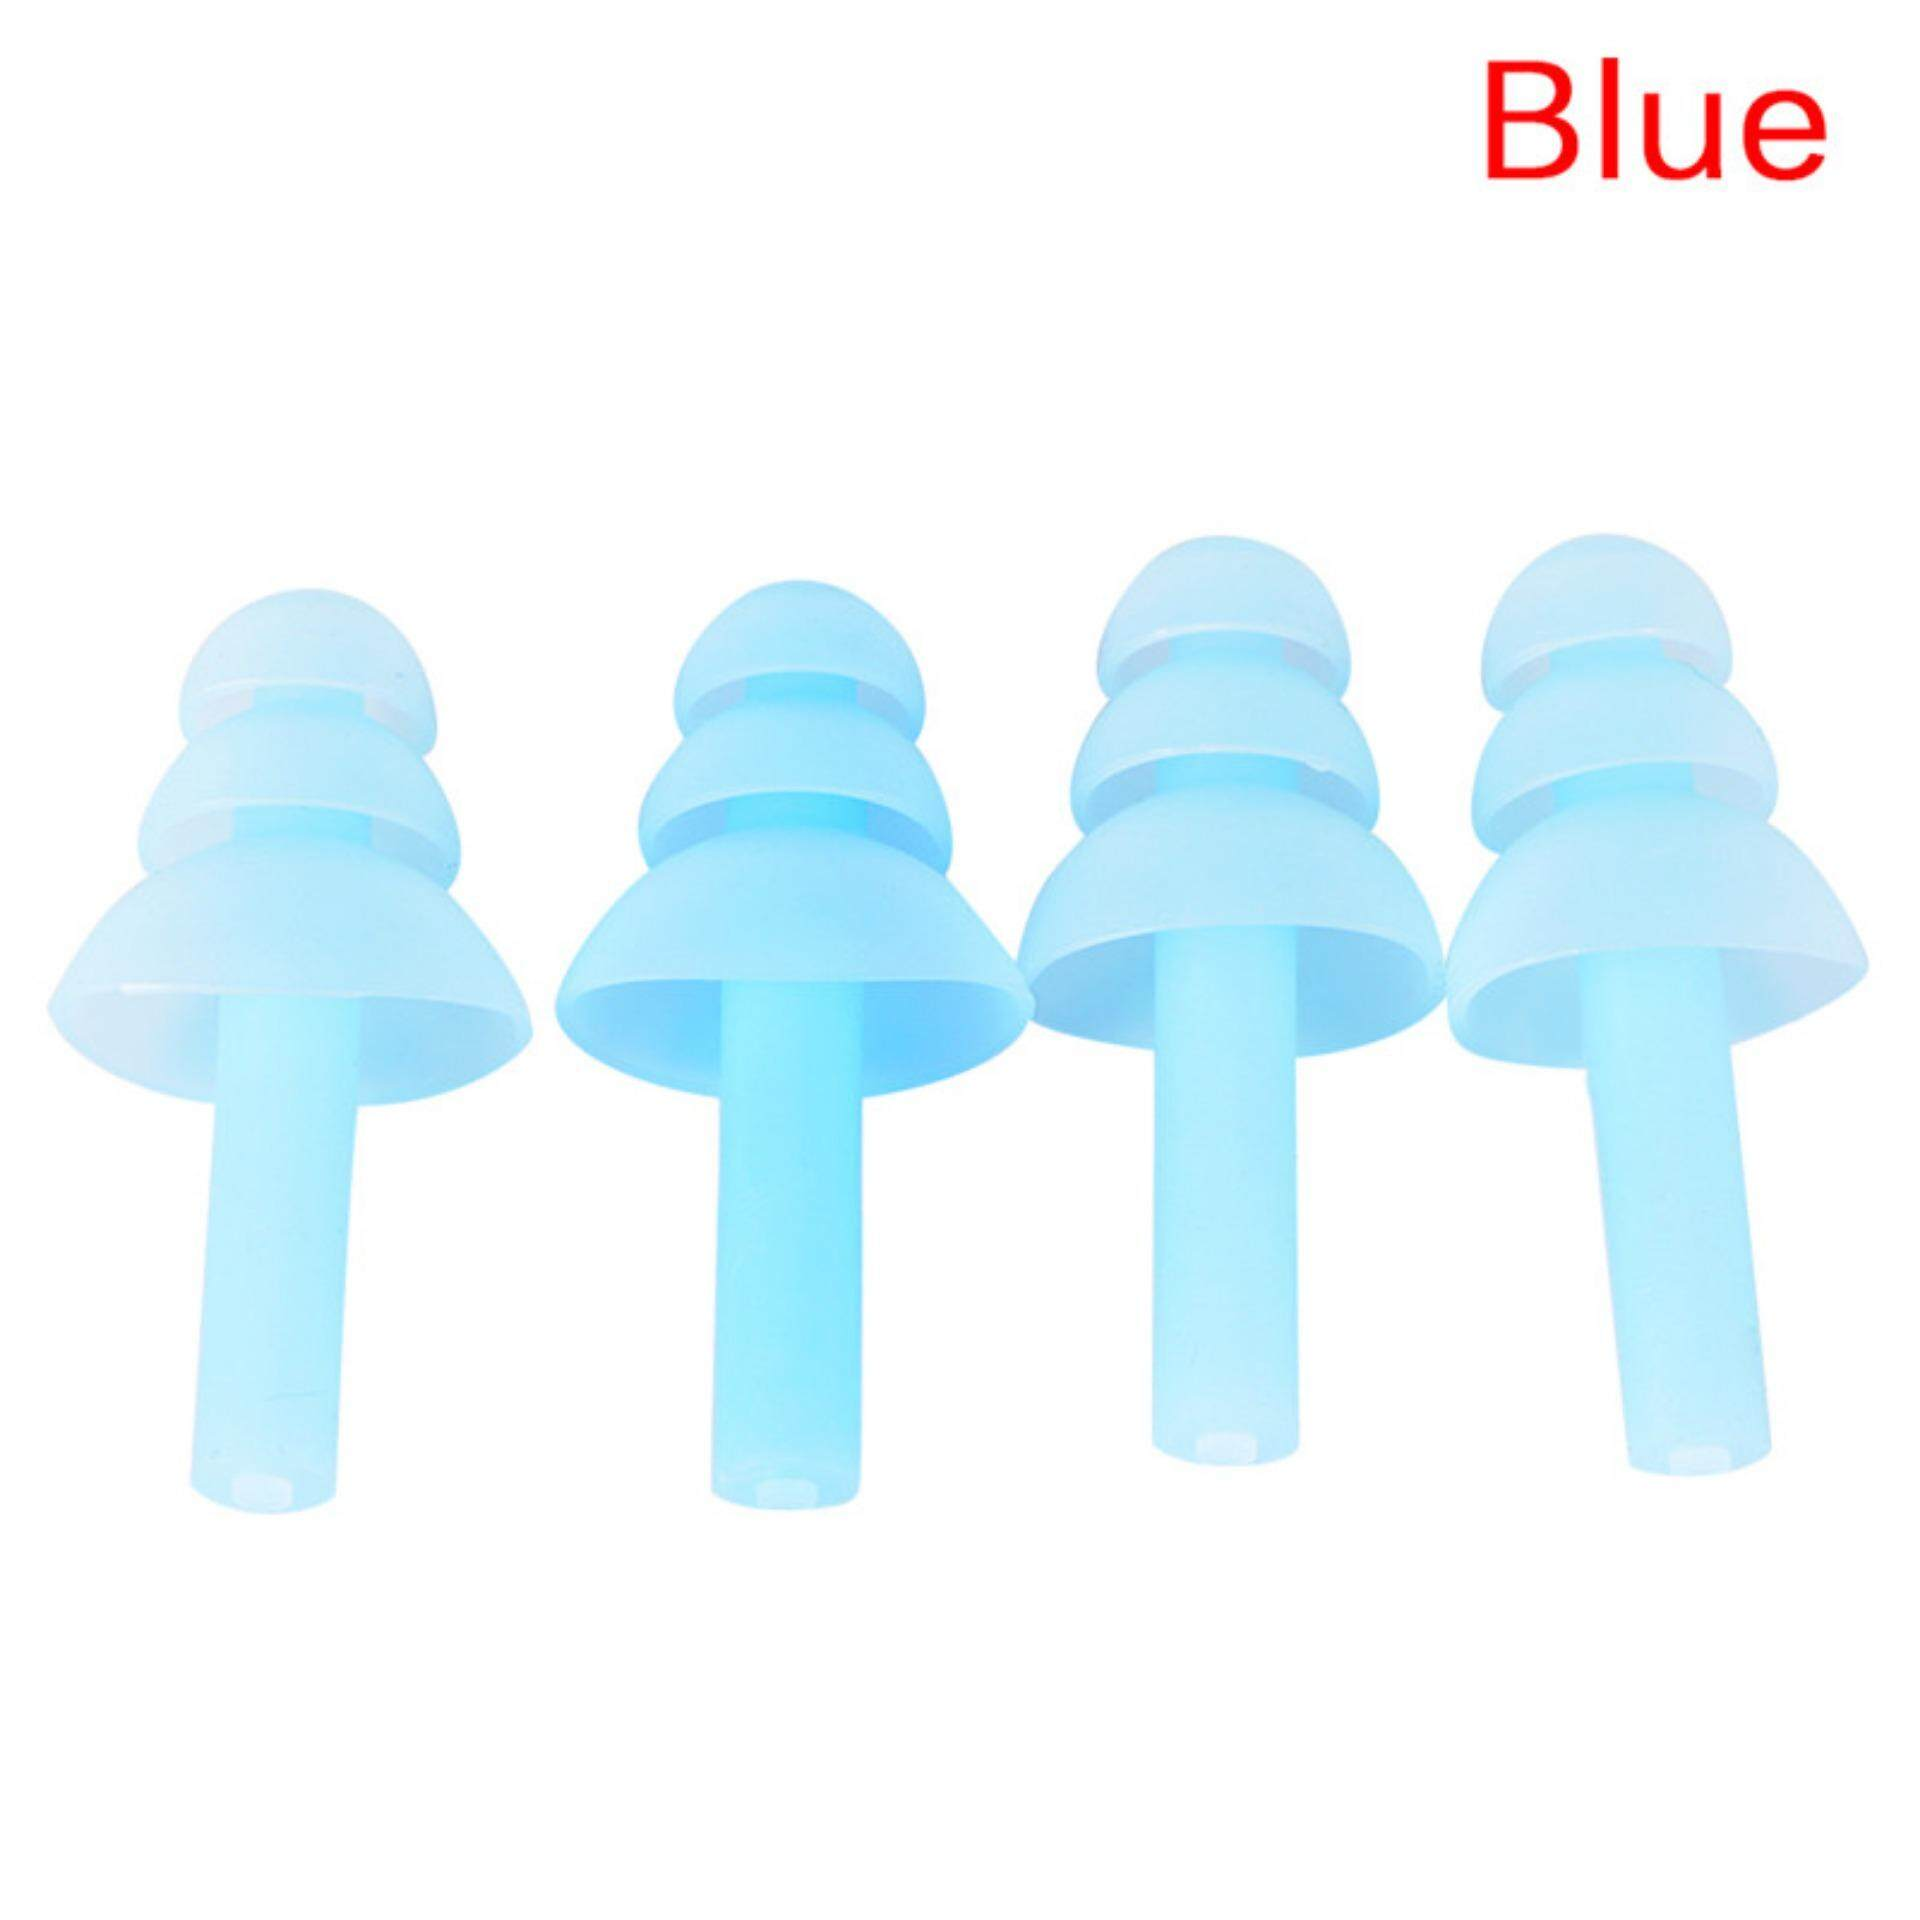 4pcs For Study Sleep Silicone Ear Plugs Anti Noise Snore Earplugs Comfortable By The Sunflower Mall.